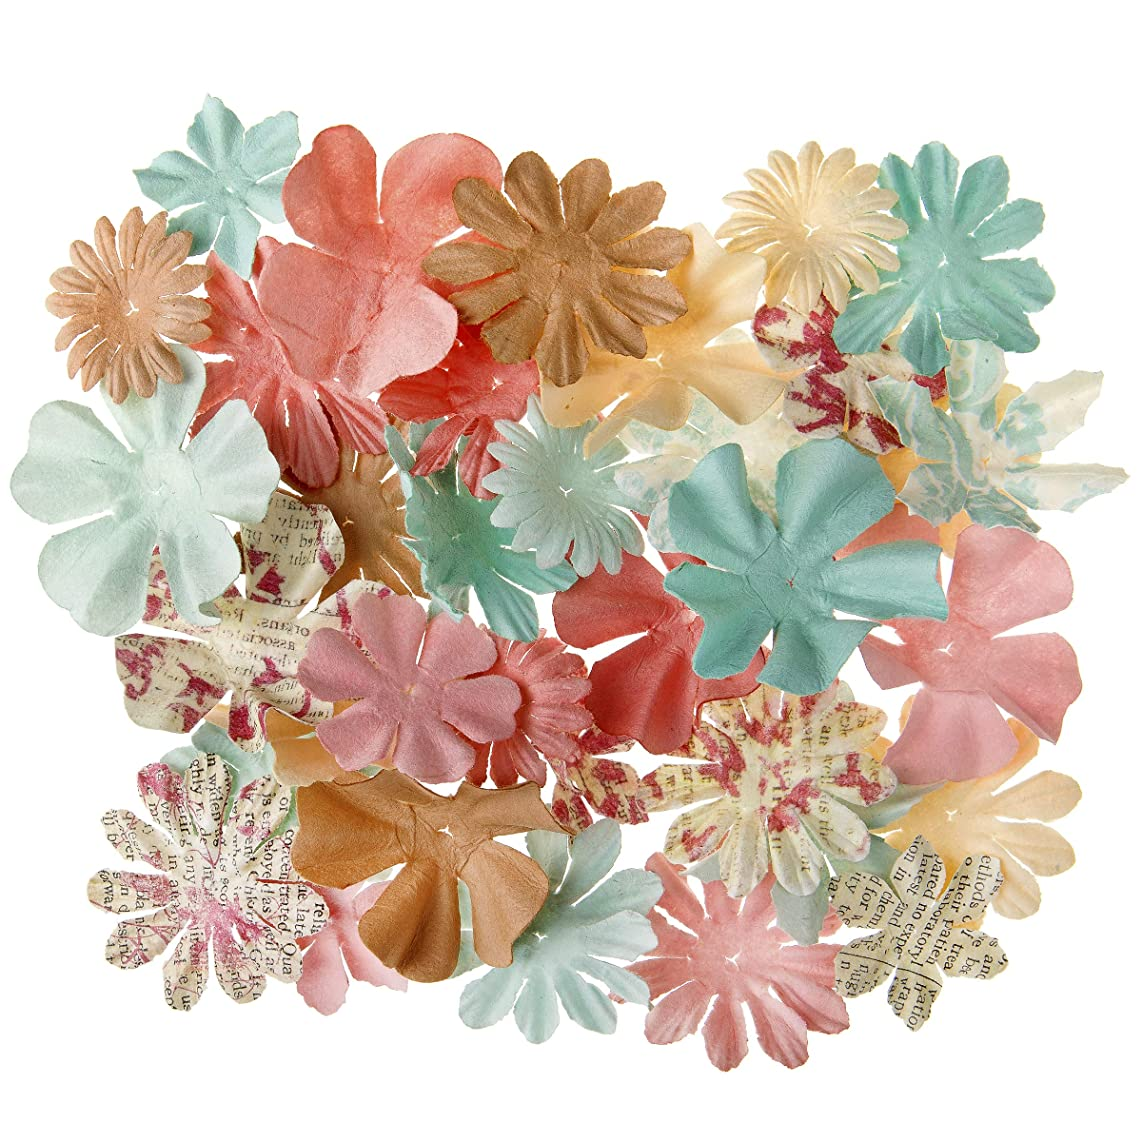 Darice 30061982 Shabby Chic Floral Embellishments: 2 inches, 65 Pack, Assorted